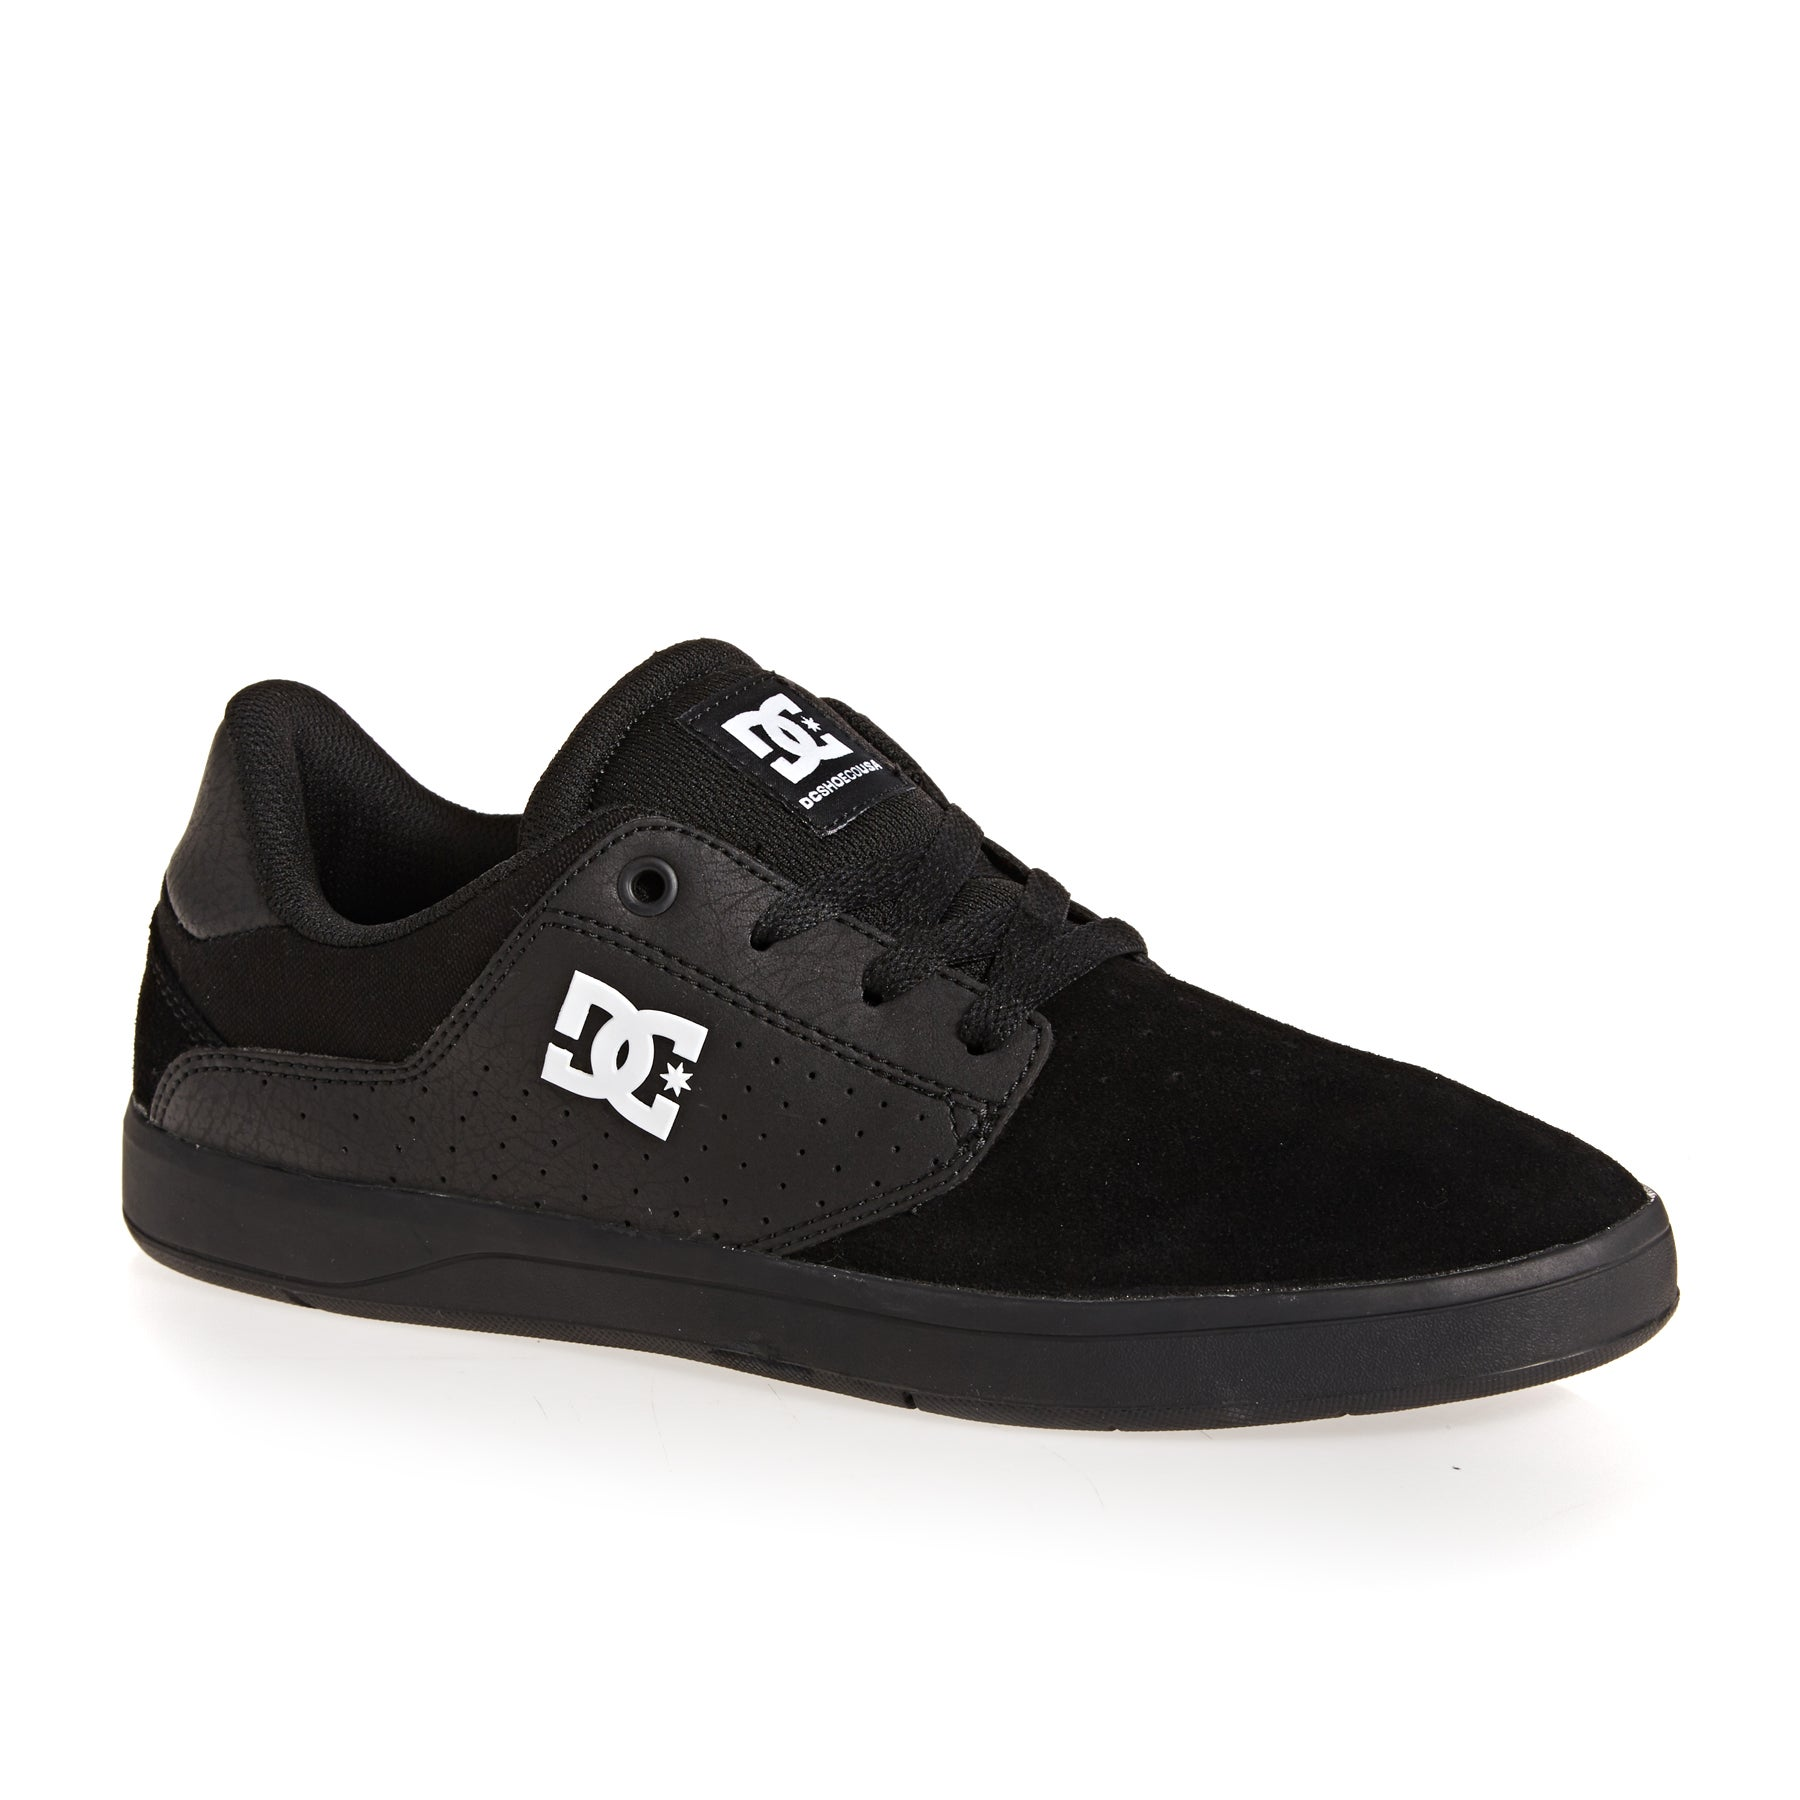 Chaussures DC Plaza TC - Black/black/white